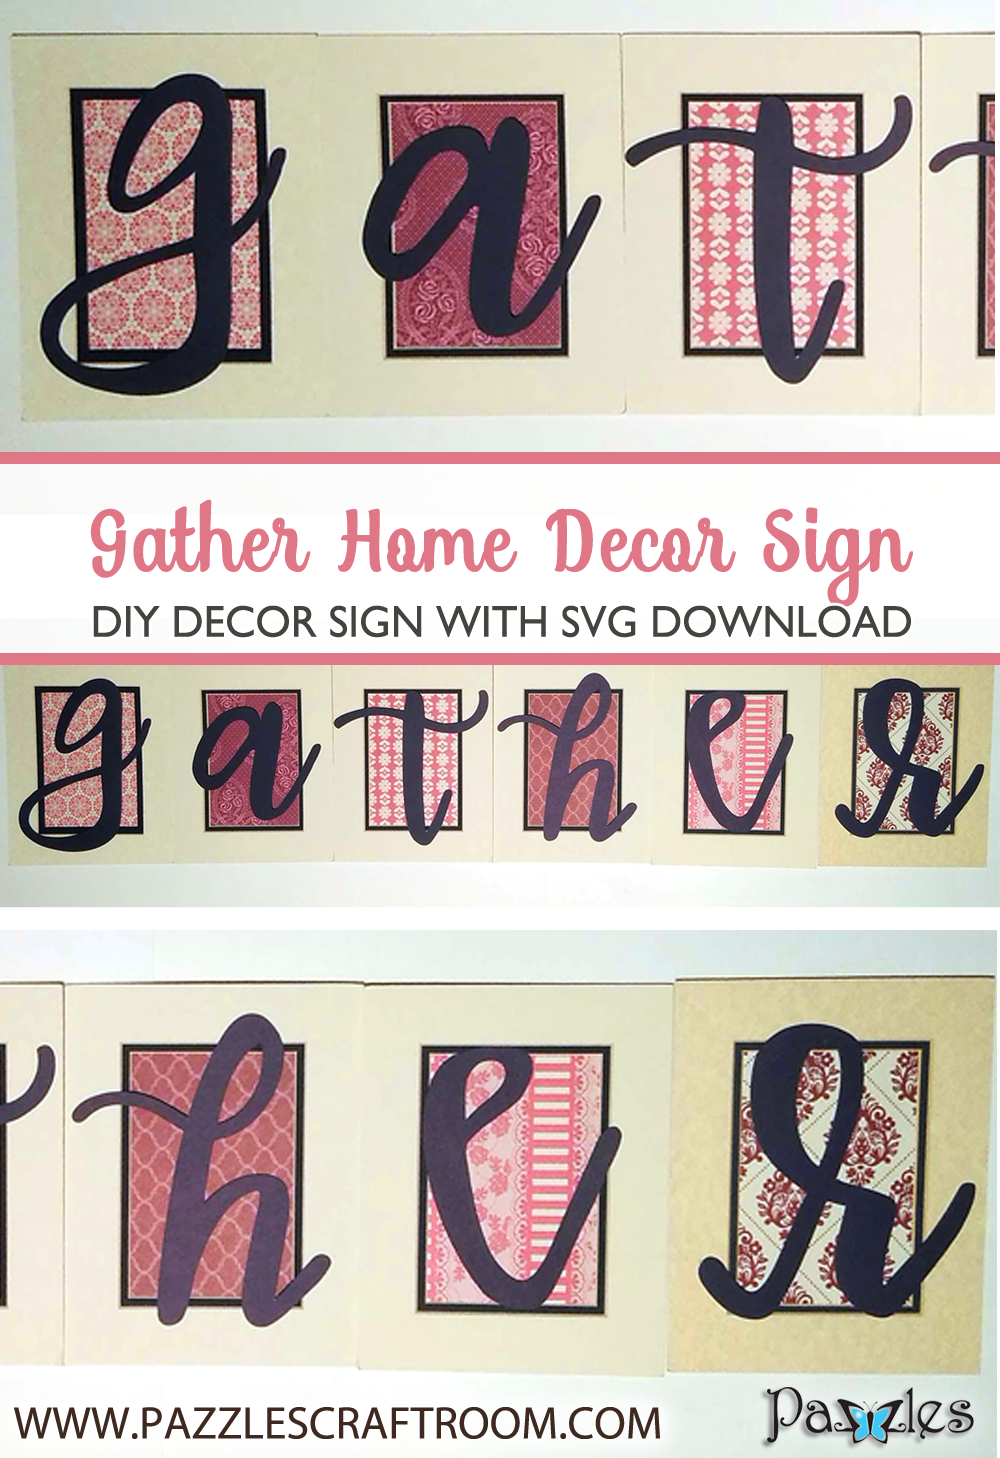 Pazzles Gather DIY Home Decor Sign with instant SVG download. Compatible with all major electronic cutters including Pazzles Inspiration, Cricut, and Silhouette Cameo. Design by Renee Smart.